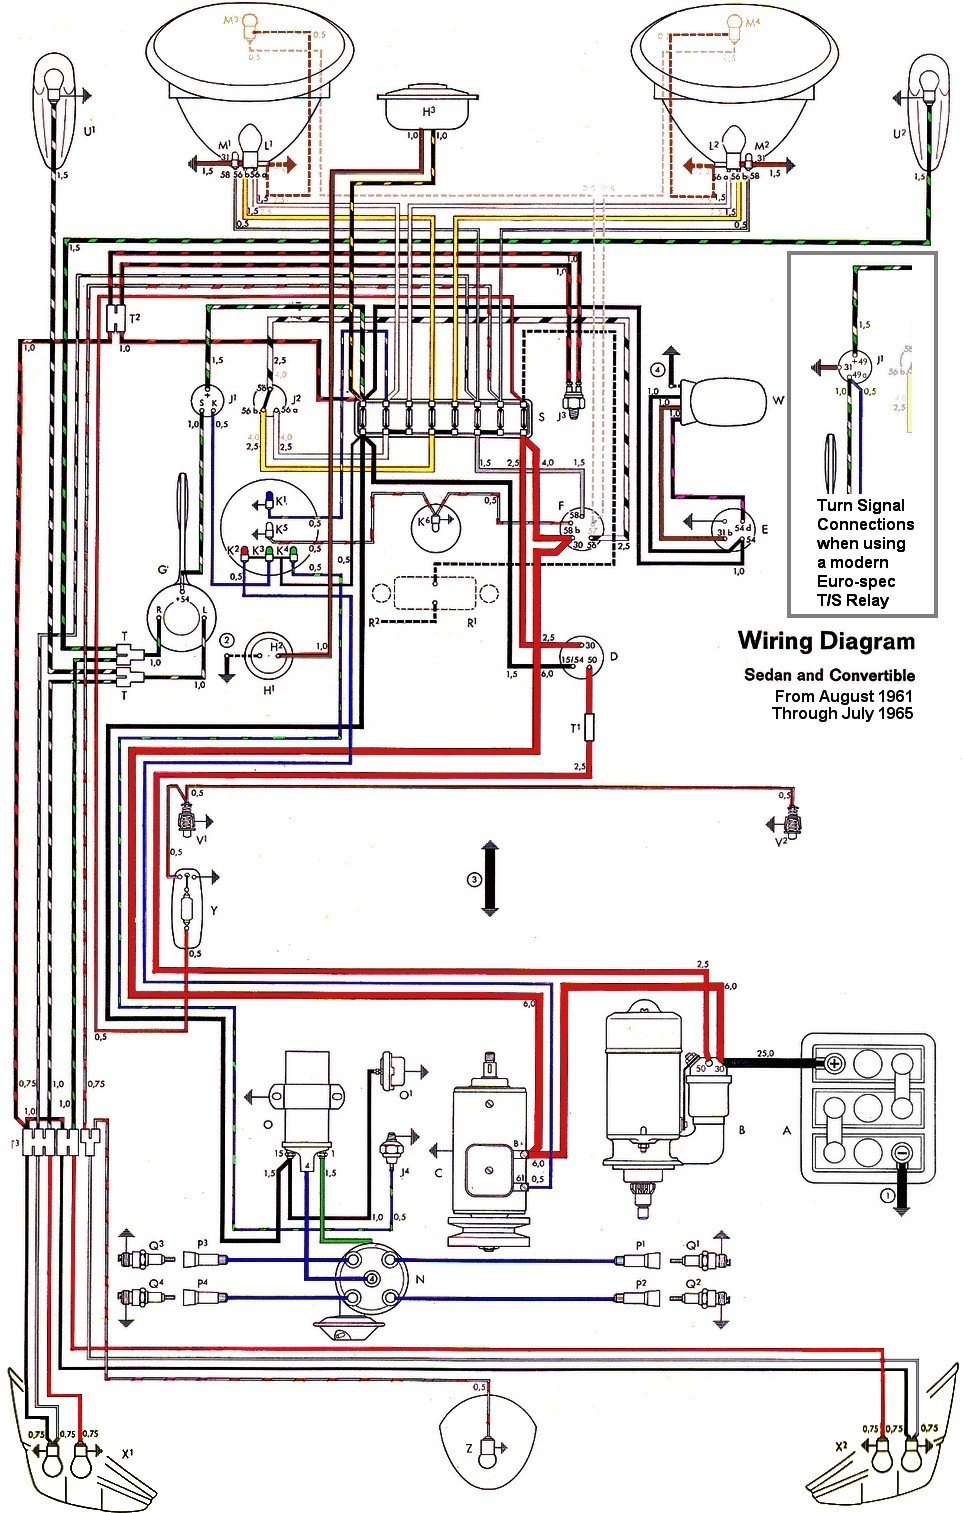 bug_62 65withinset thesamba com type 1 wiring diagrams blinker wiring diagram at sewacar.co